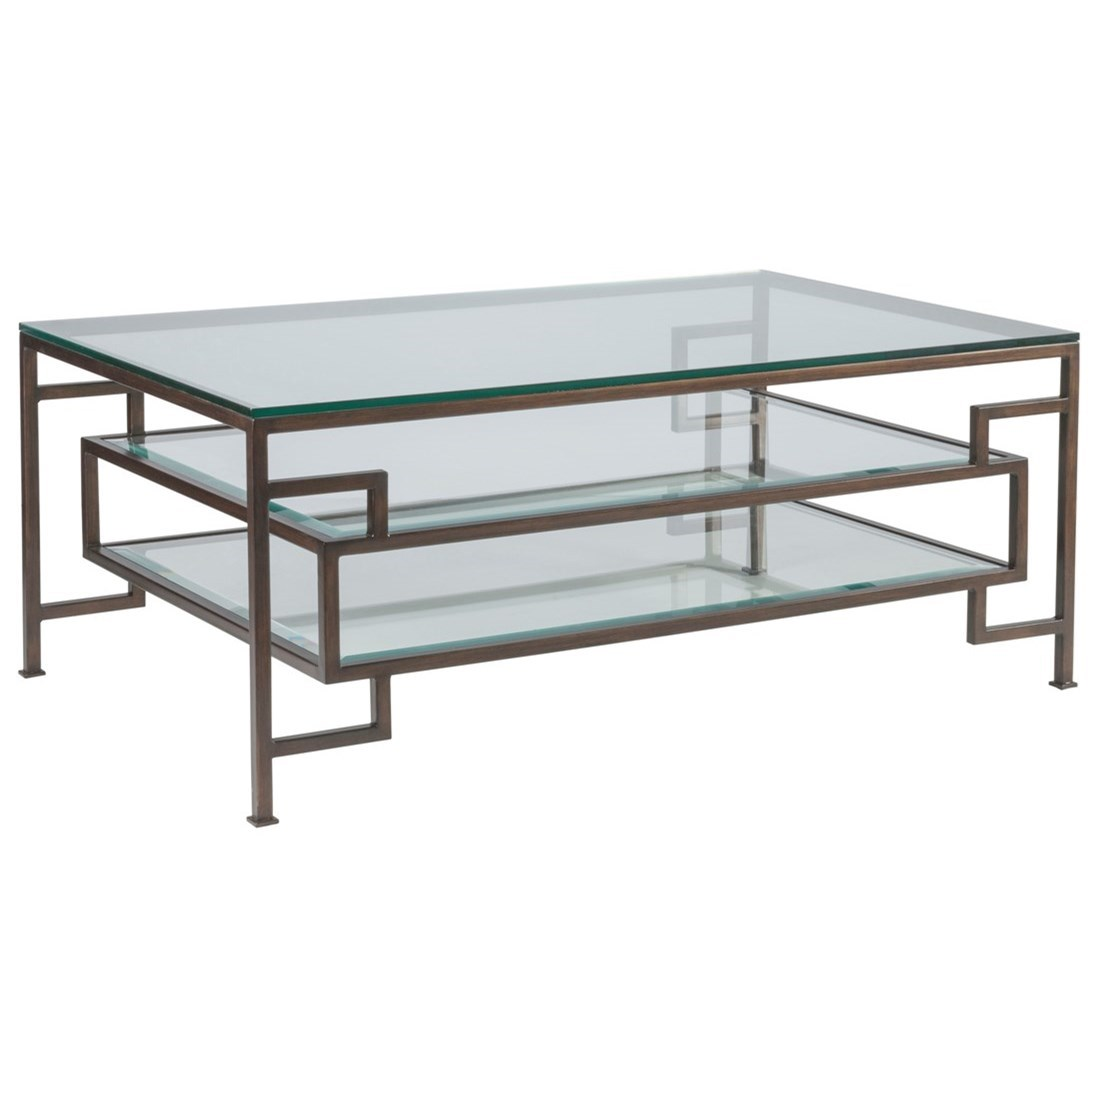 Metal Designs Suspension Rectangular Cocktail Table by Artistica at Alison Craig Home Furnishings